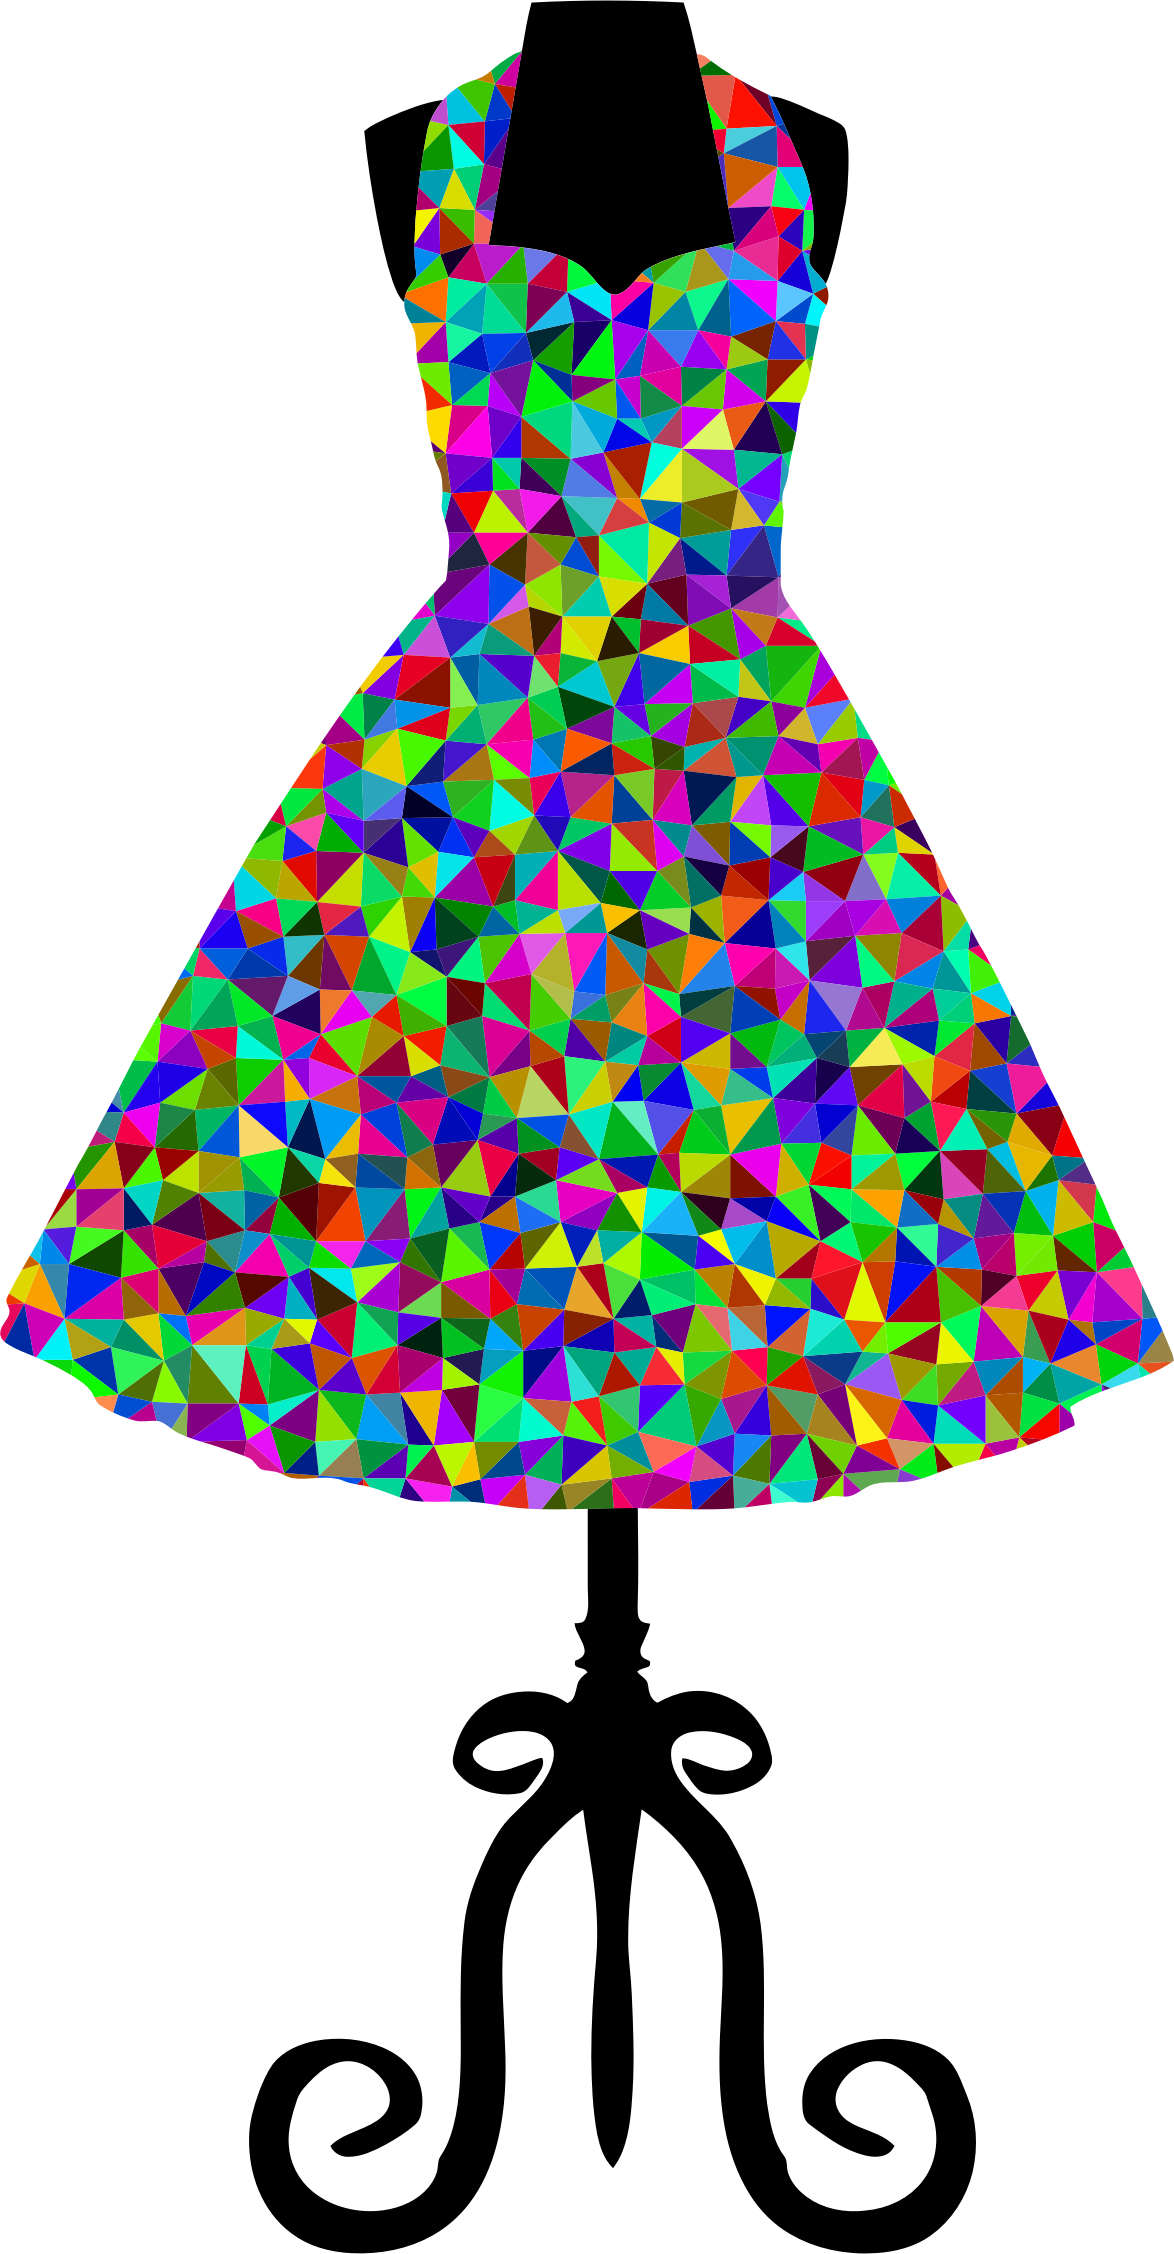 Dress clipart sleeveless dress. Sundress group silhouette clip